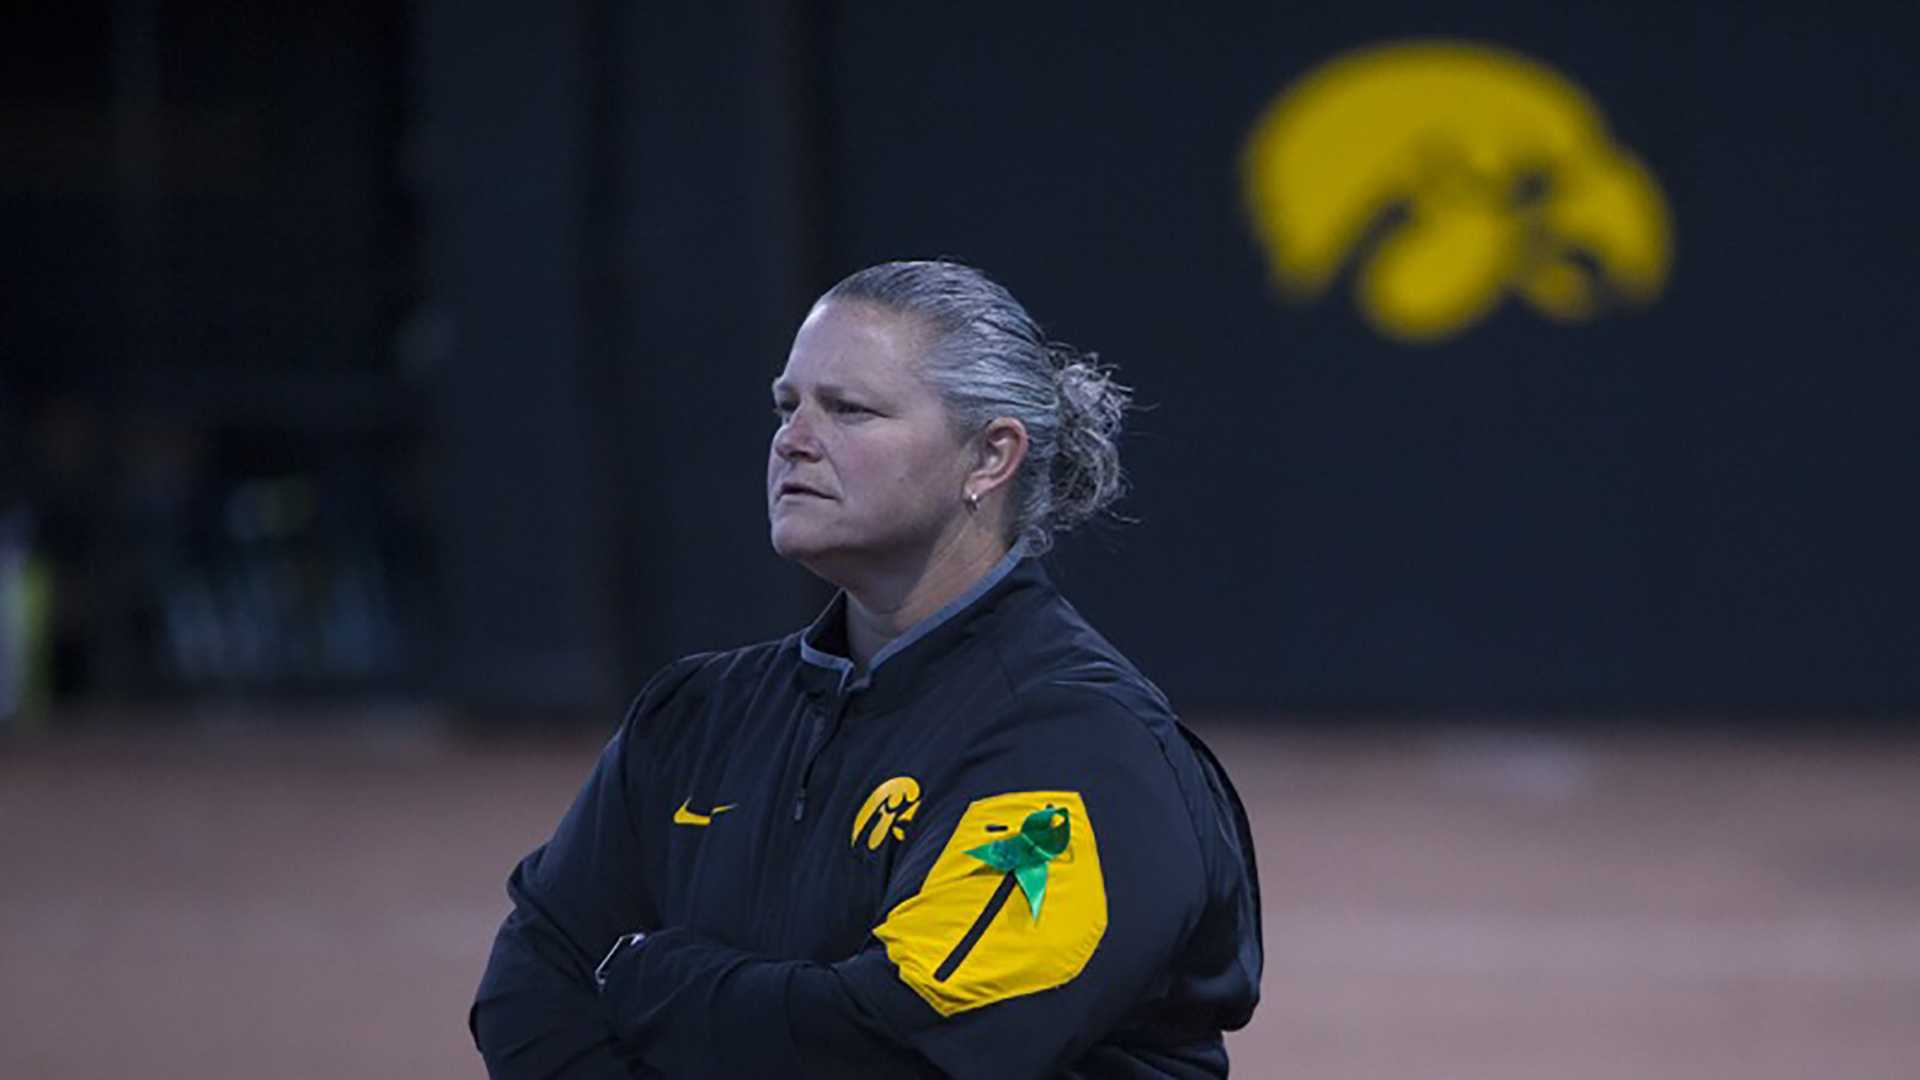 Iowa head coach Marla Looper looks to the outfield during a softball game against Valparaiso at Bob Pearl Field in Iowa City on Friday, March 17, 2017. The Hawkeyes defeated the Crusaders, 3-0. (The Daily Iowan/Joseph Cress)